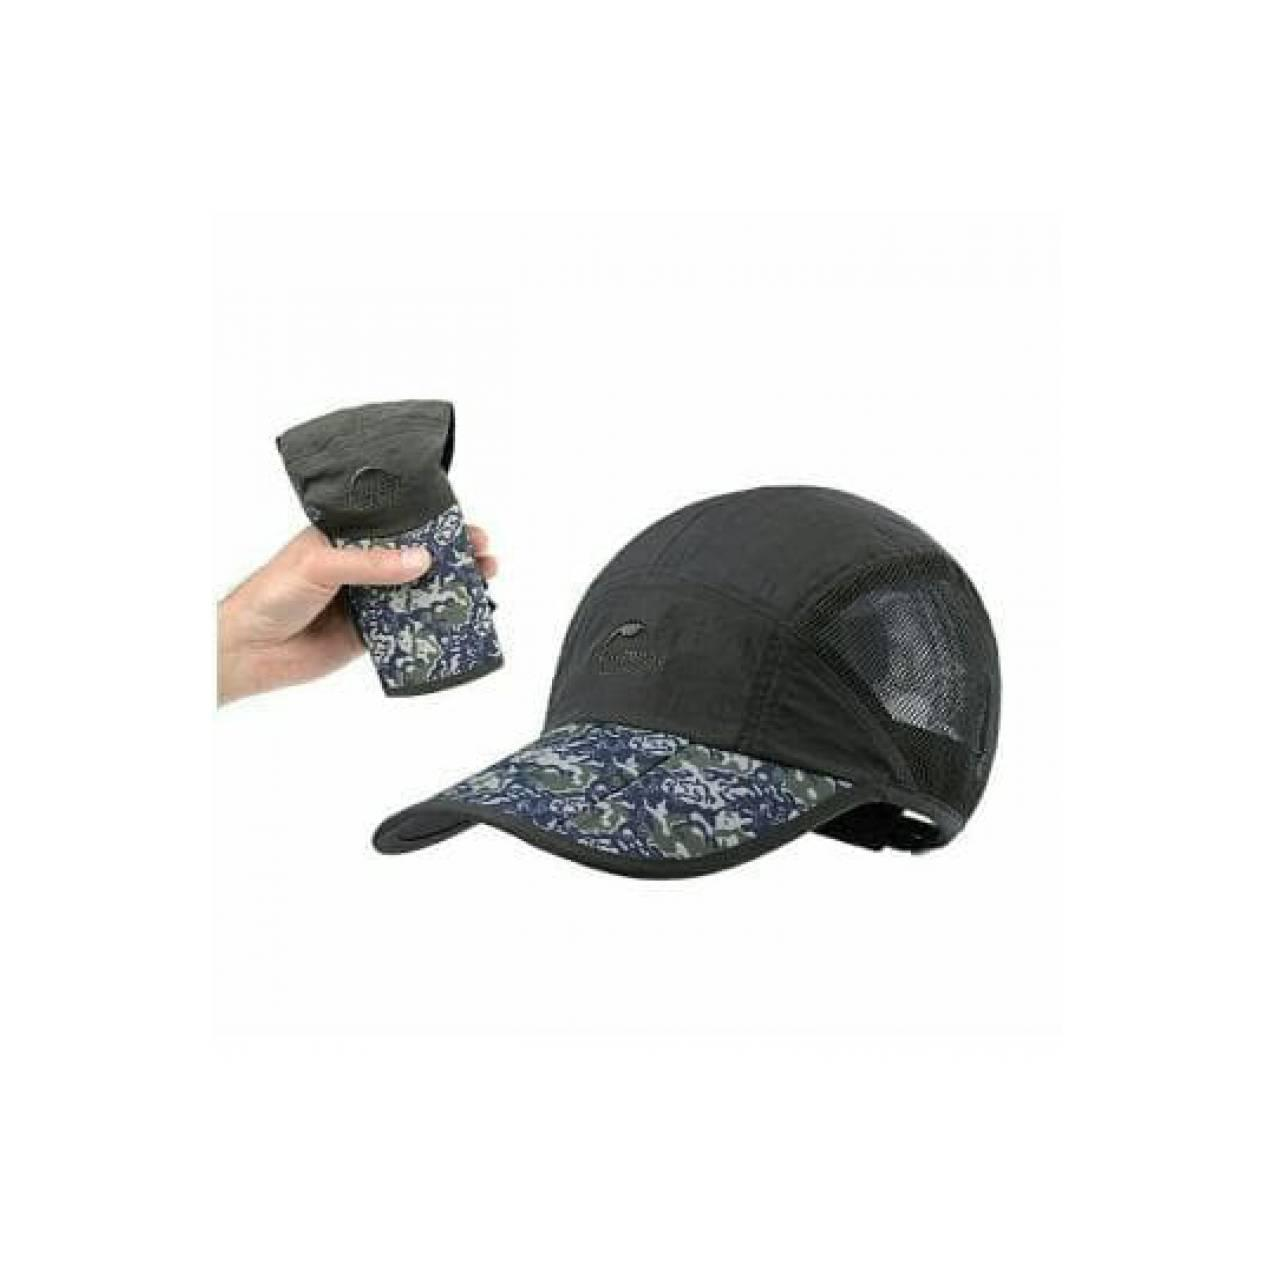 LIMITED EDITION Topi Naturehike eiger rei consina the north face